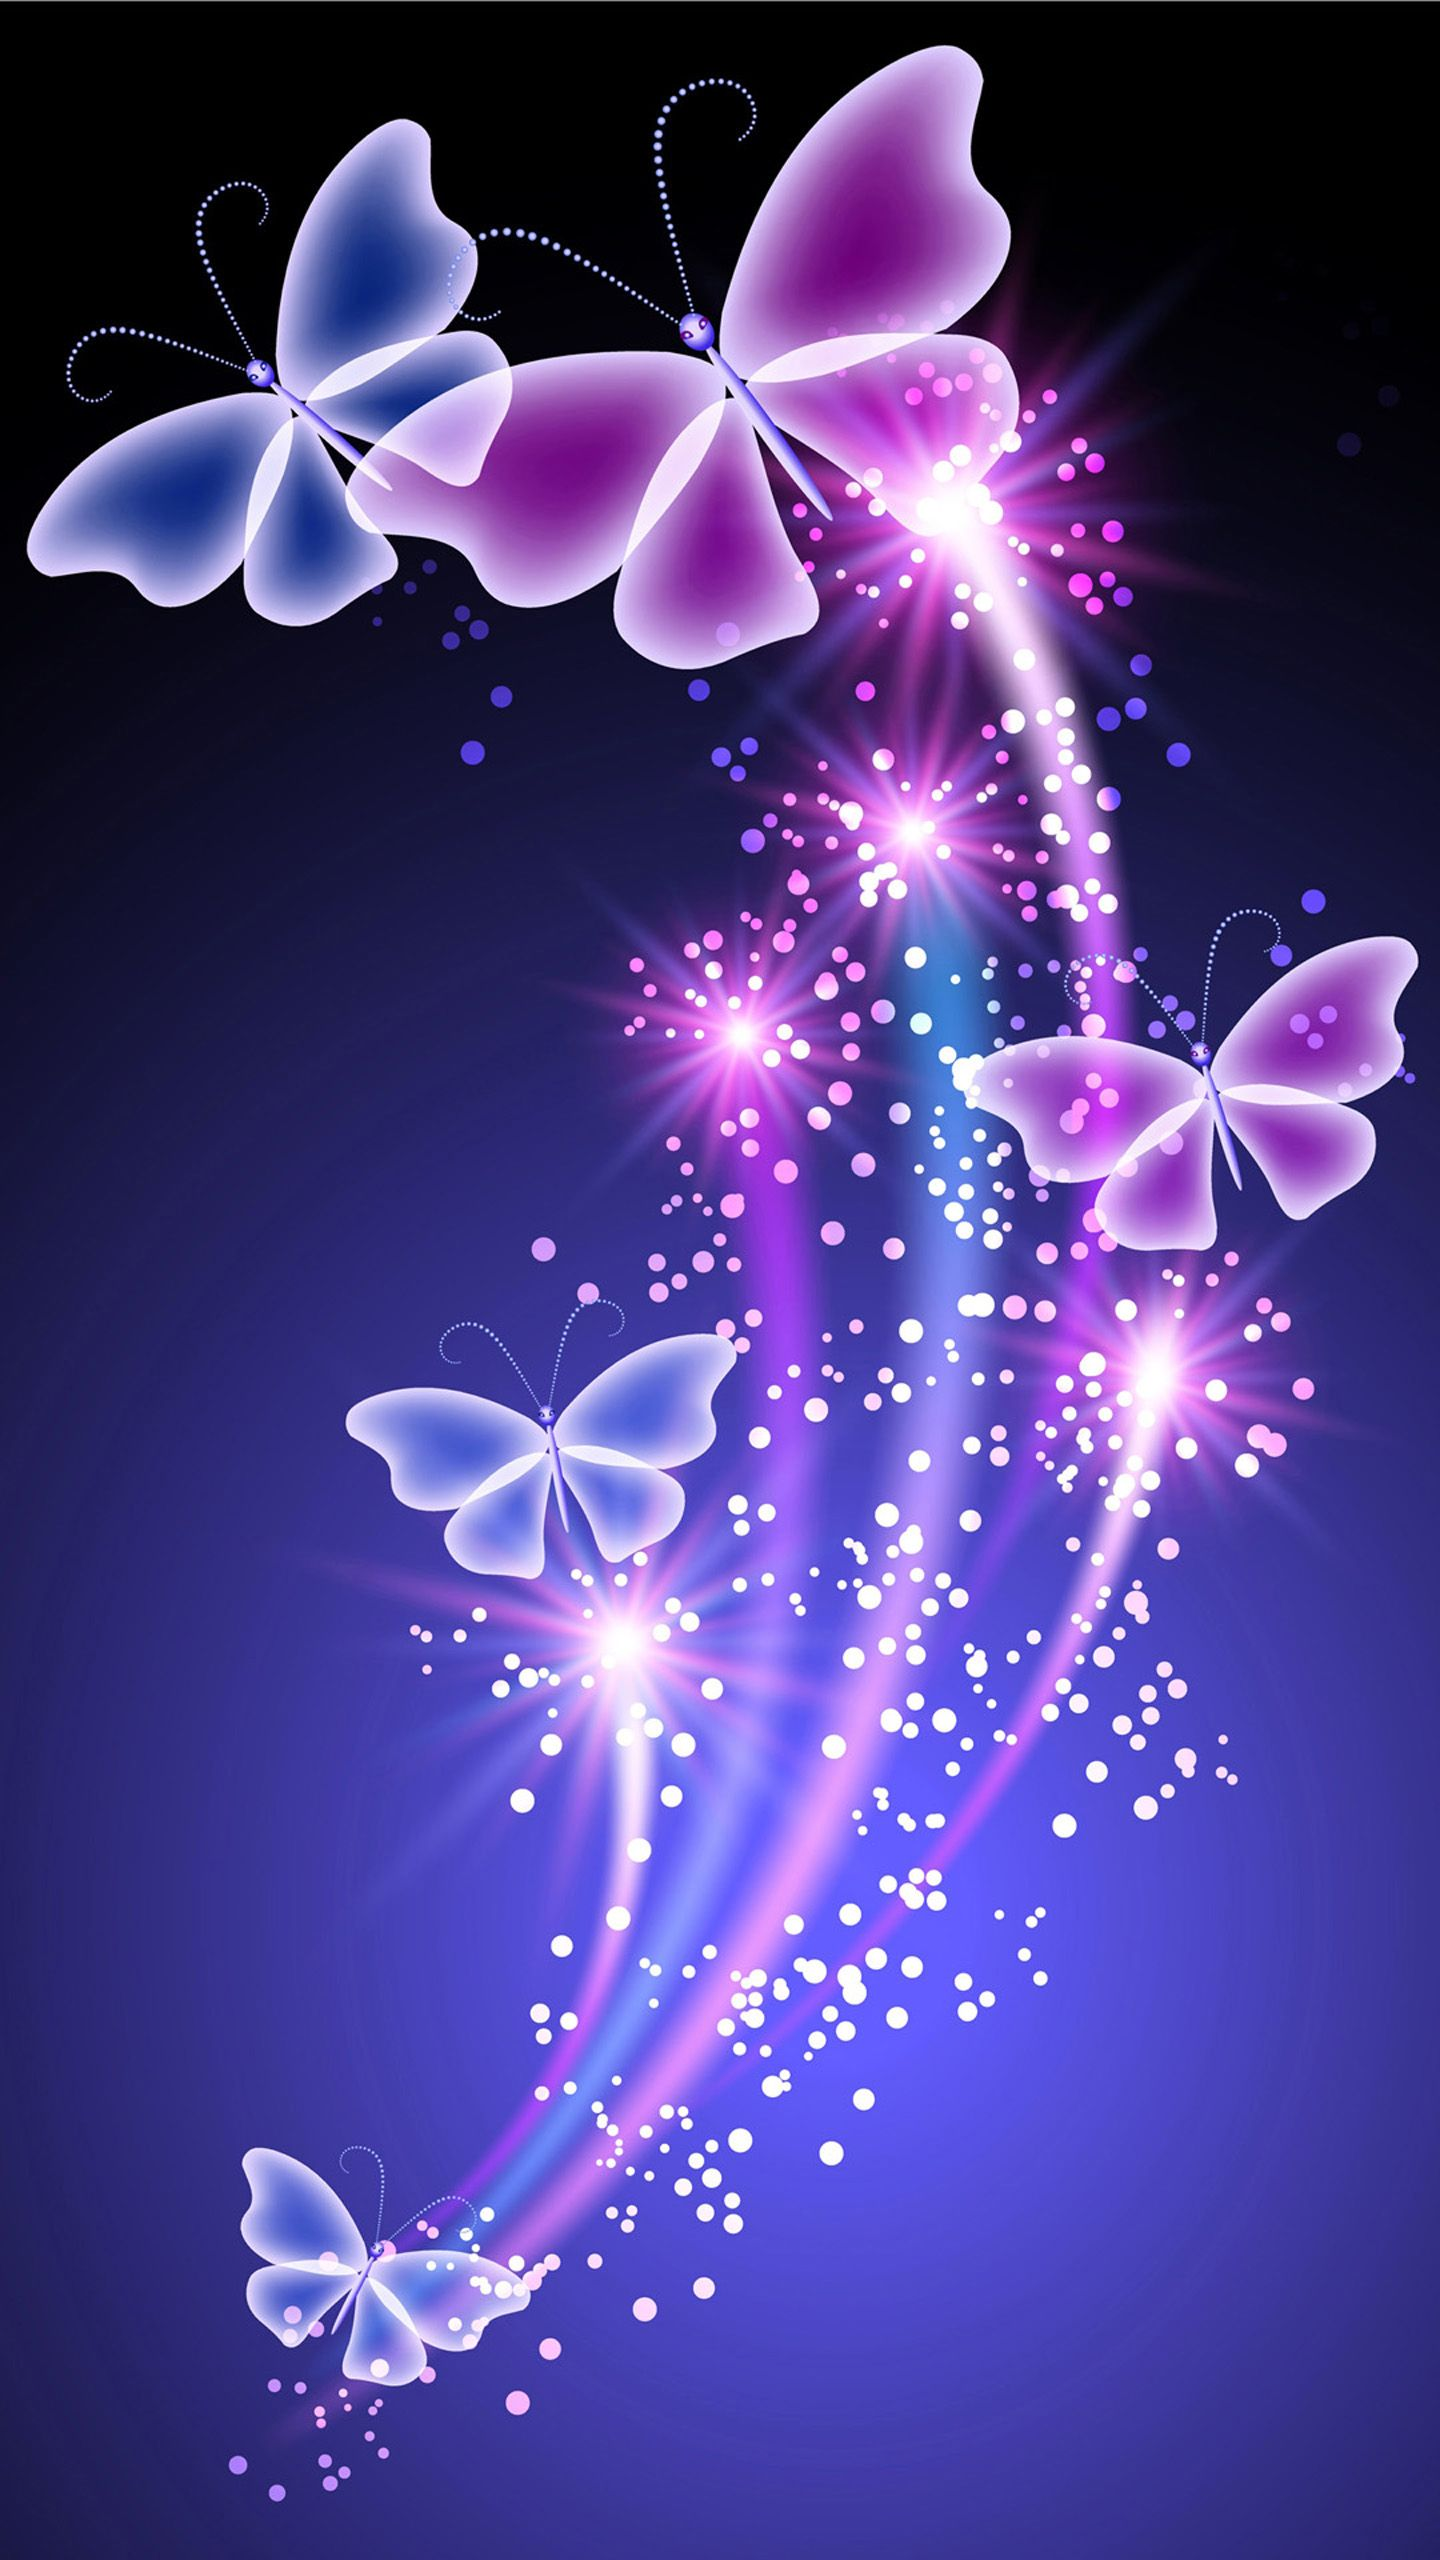 Colorful fluorescent butterfly wallpapers for galaxy S6.jpg (1440 ... for Colorful Butterfly Wallpapers  183qdu